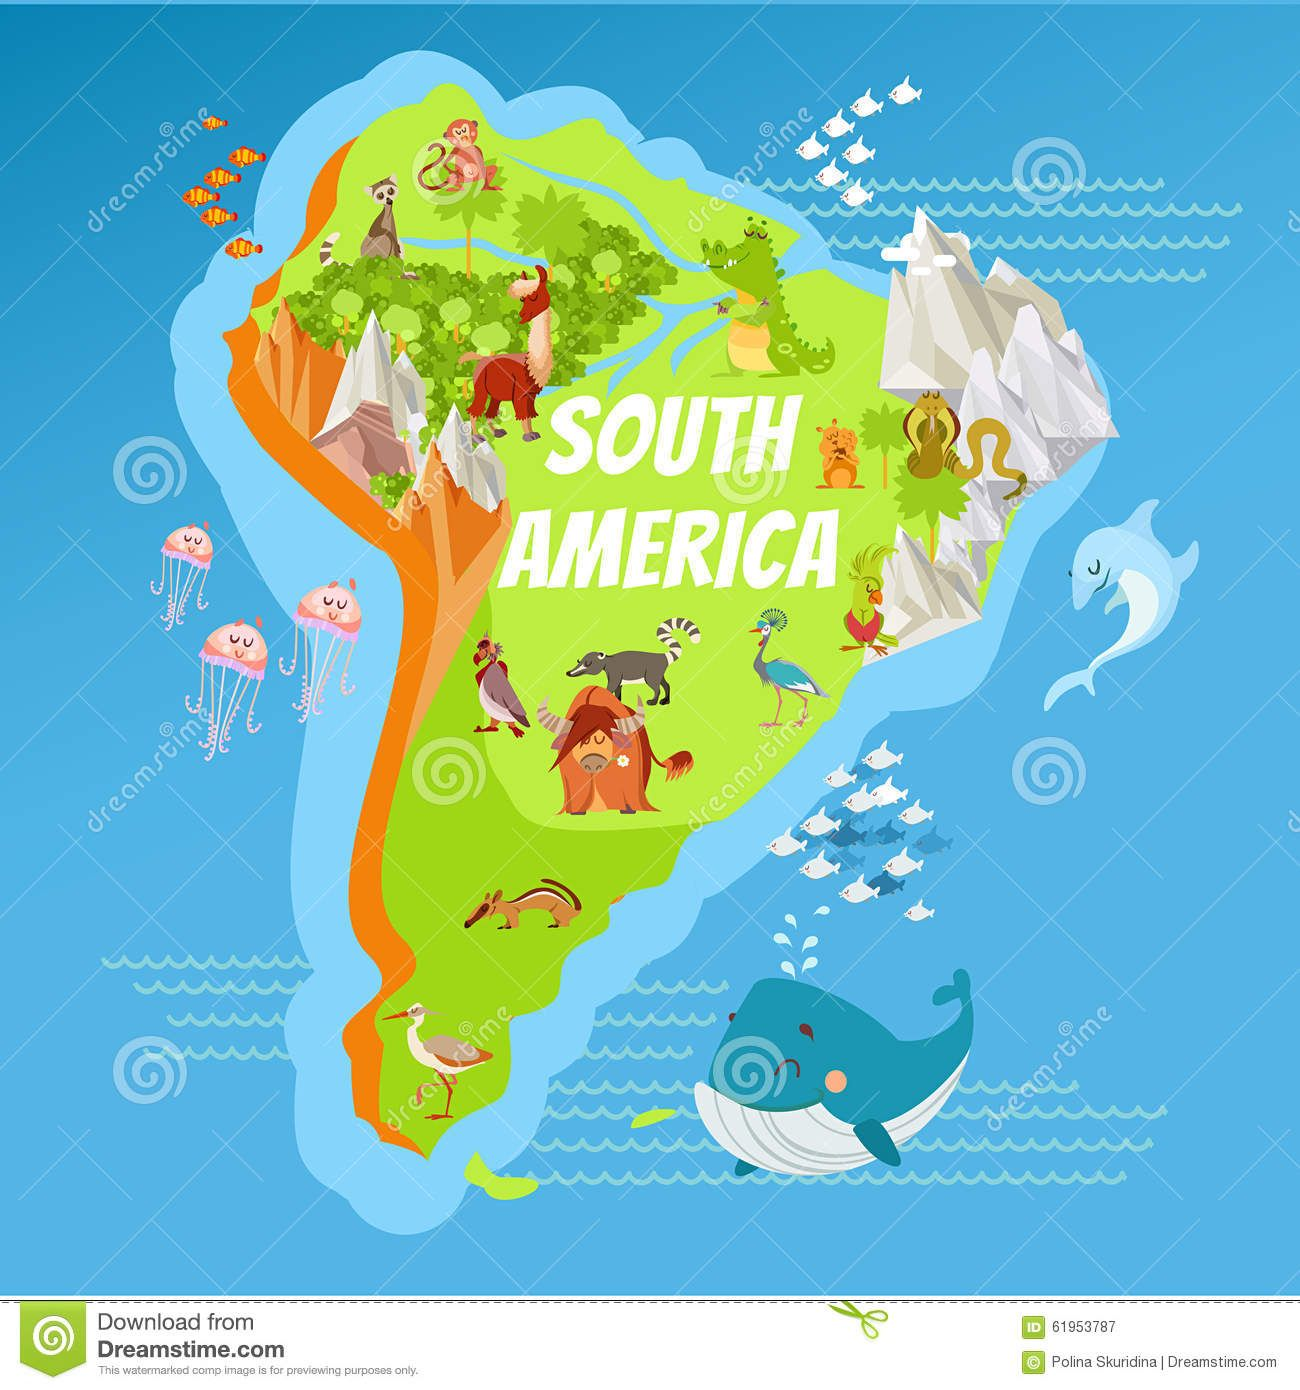 Cartoon South America Continent Geographic Map Download From - Argentina map continent